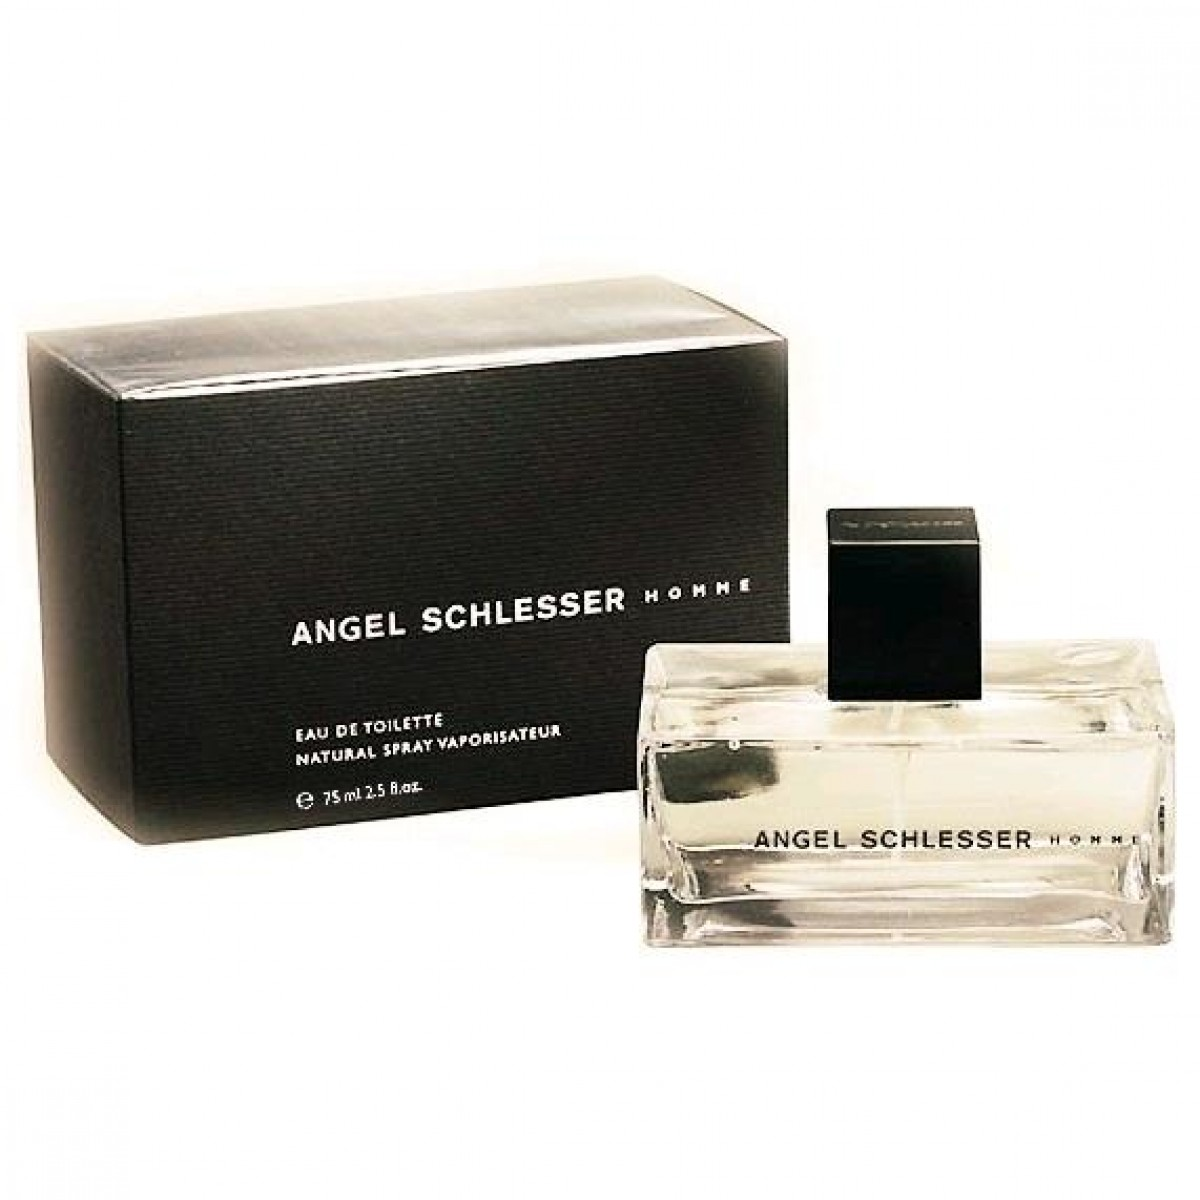 Angel Schlesser Homme - Men - 2.5 Oz. EDT